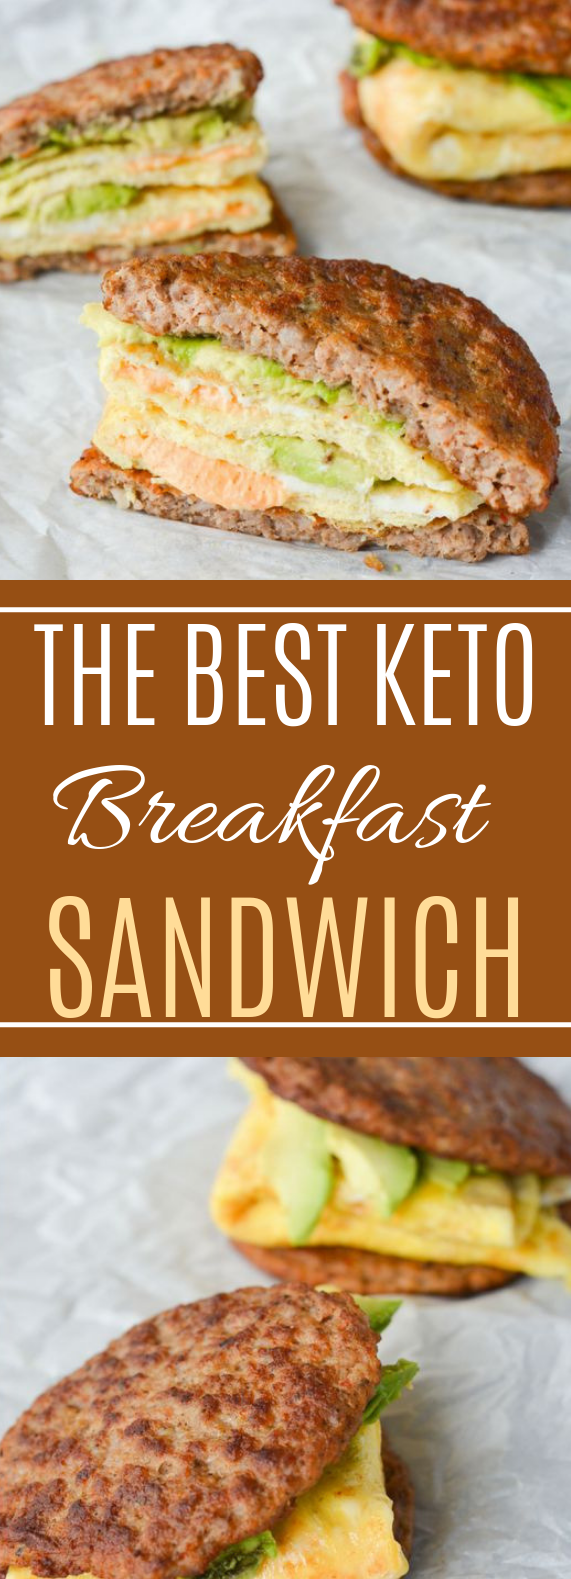 My Favorite Keto Breakfast Sandwich #healthy #lowcarb